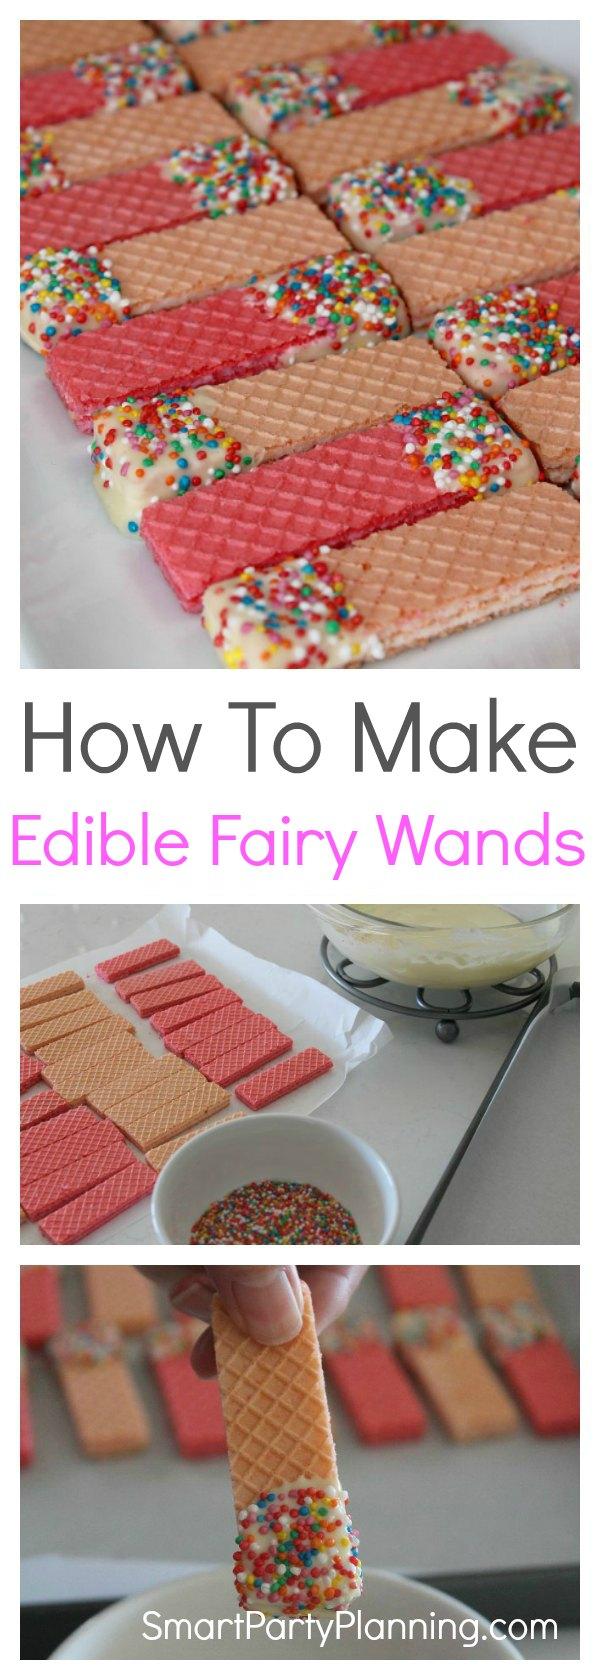 How to make edible fairy wands